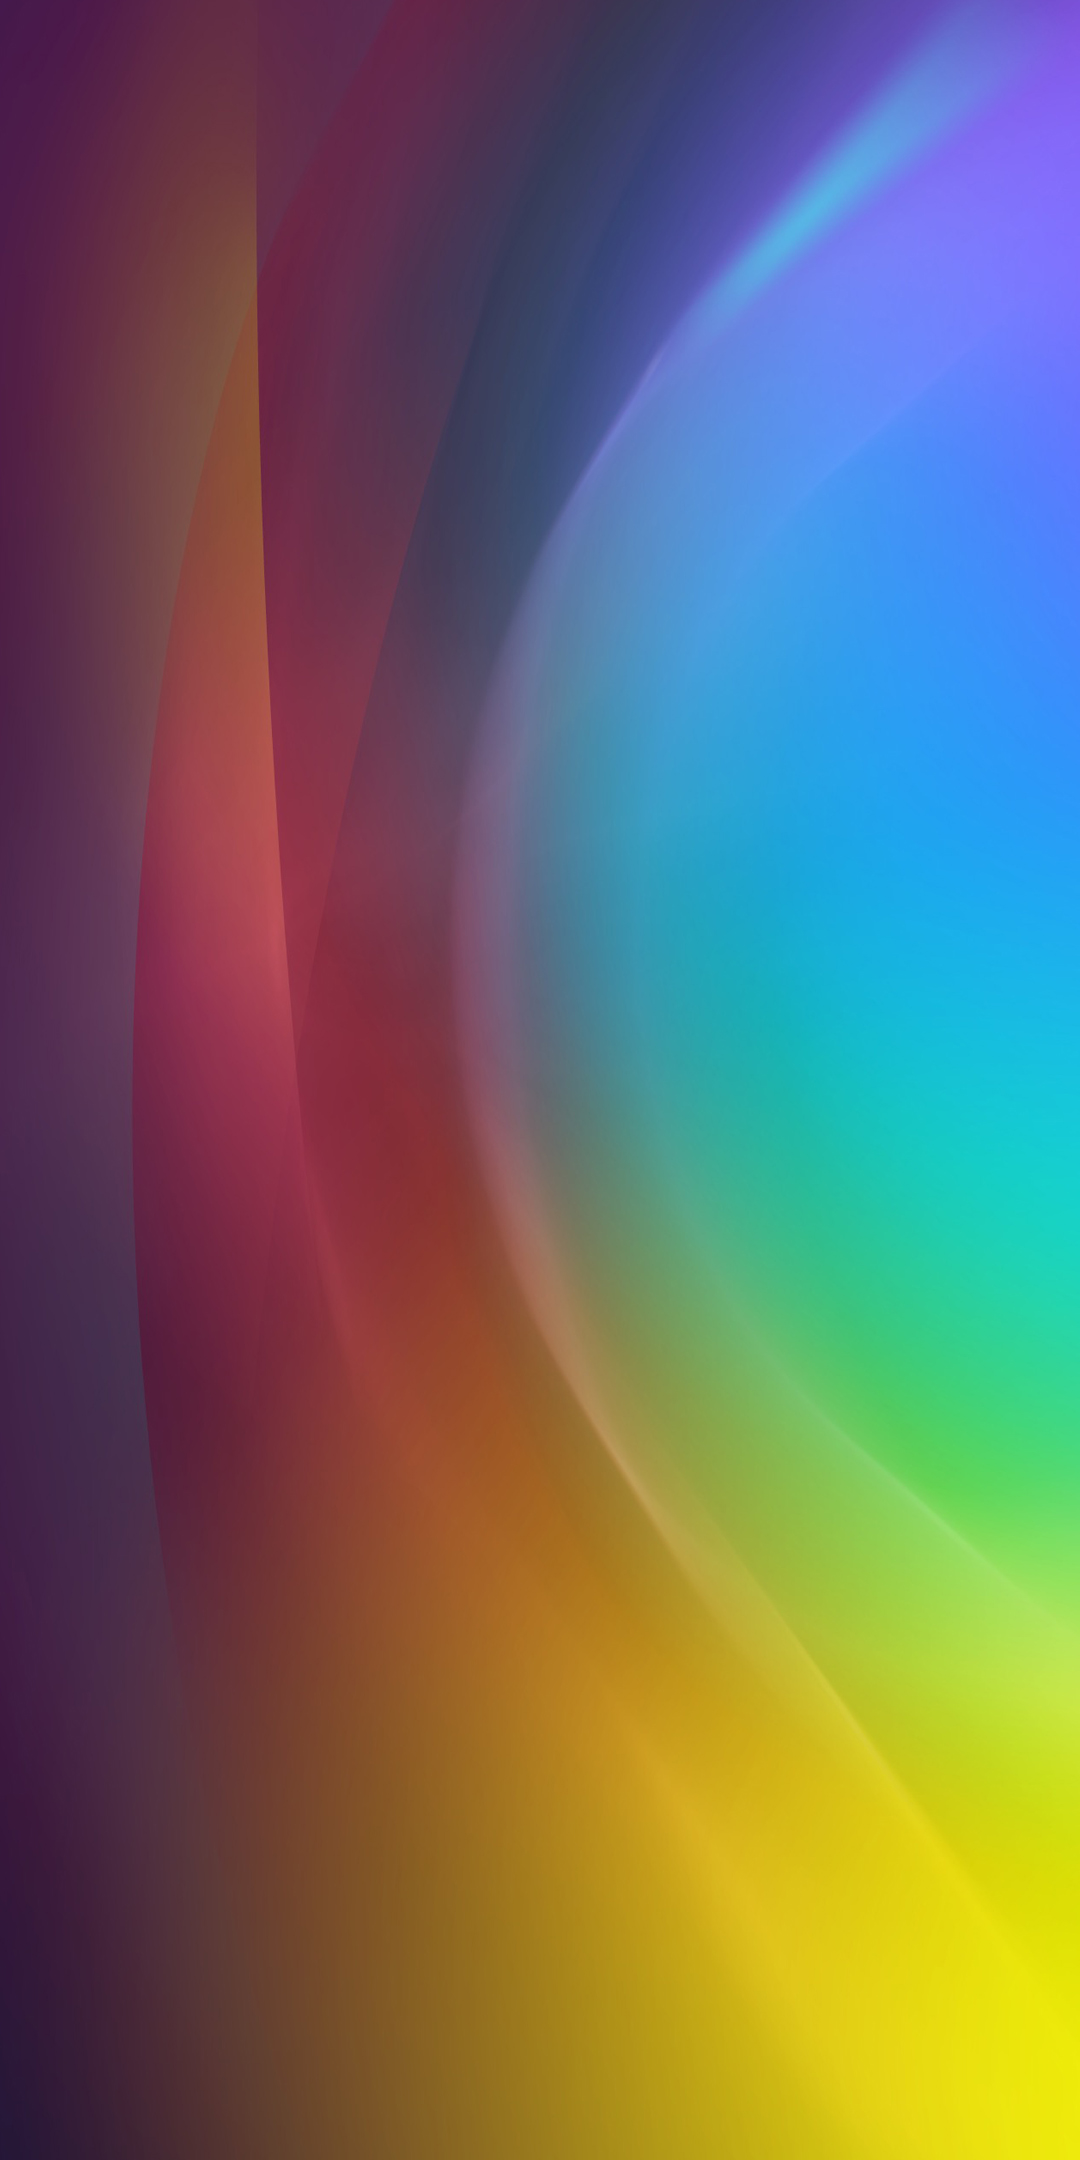 Huawei Mate 9 Pro Wallpapers: Huawei Mate 10 Pro Wallpaper 01 Of 10 With Abstract Light